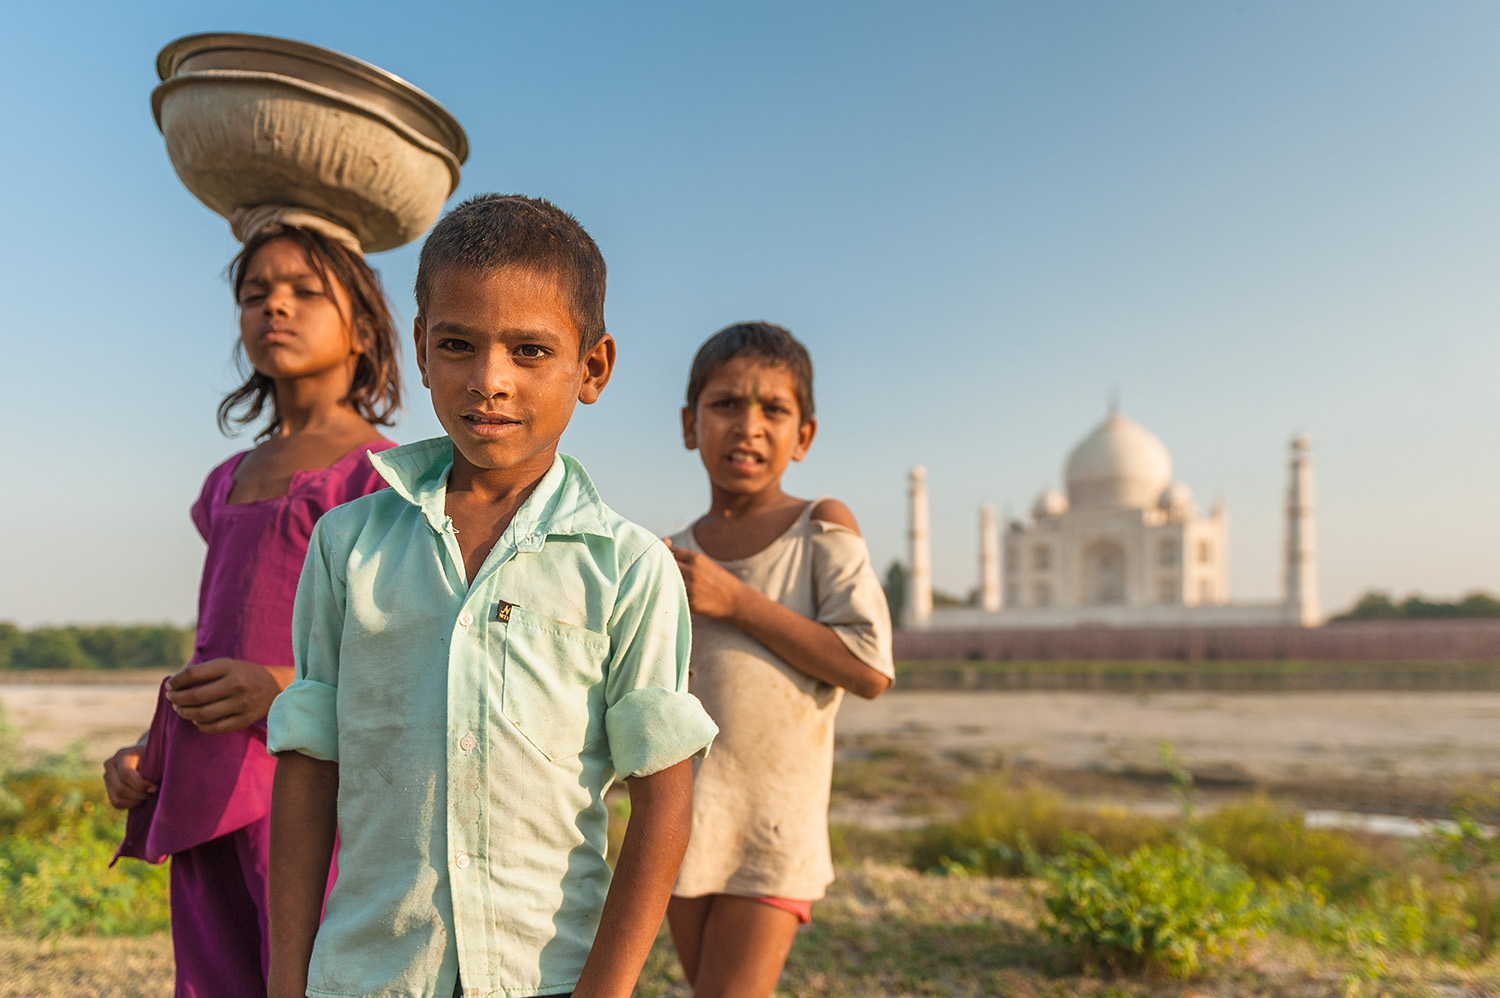 travel-photography-asia-india-kids-portrait-taj-mahal.jpg